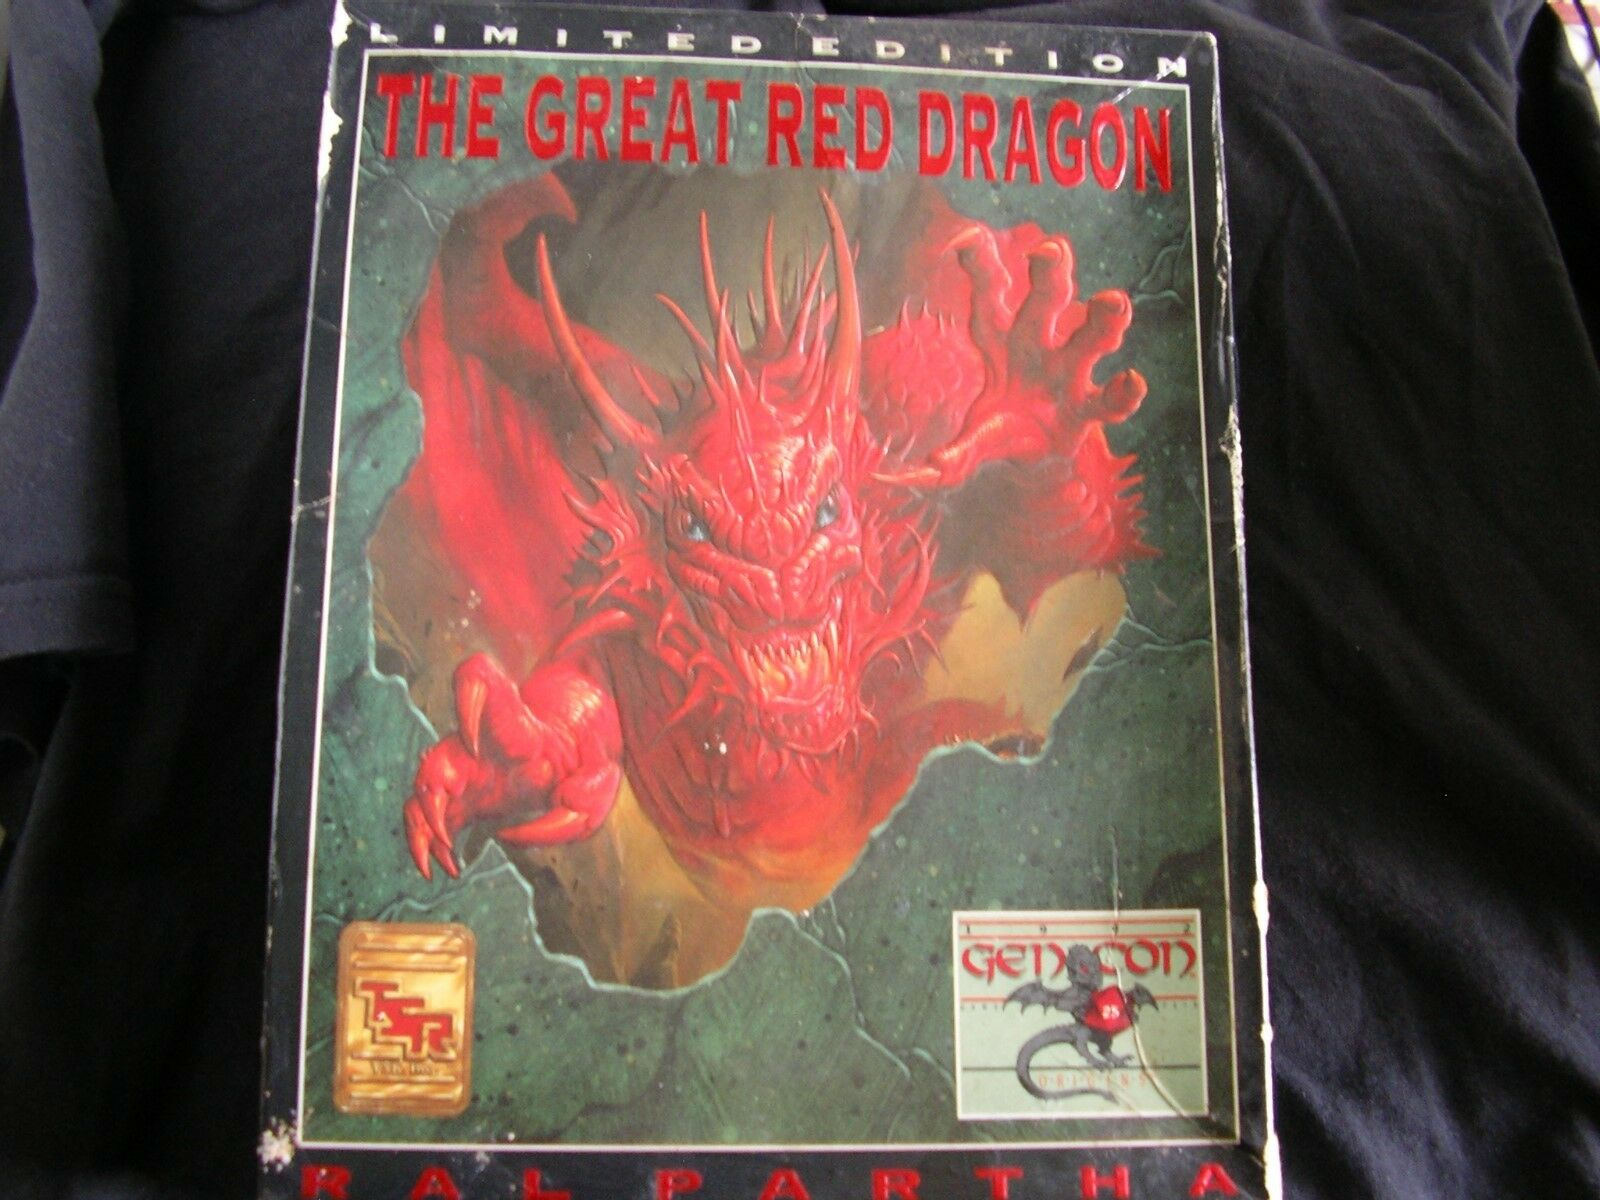 The Great Great Great Red Dragon - Limited Edition - Ral Patha 4a3758